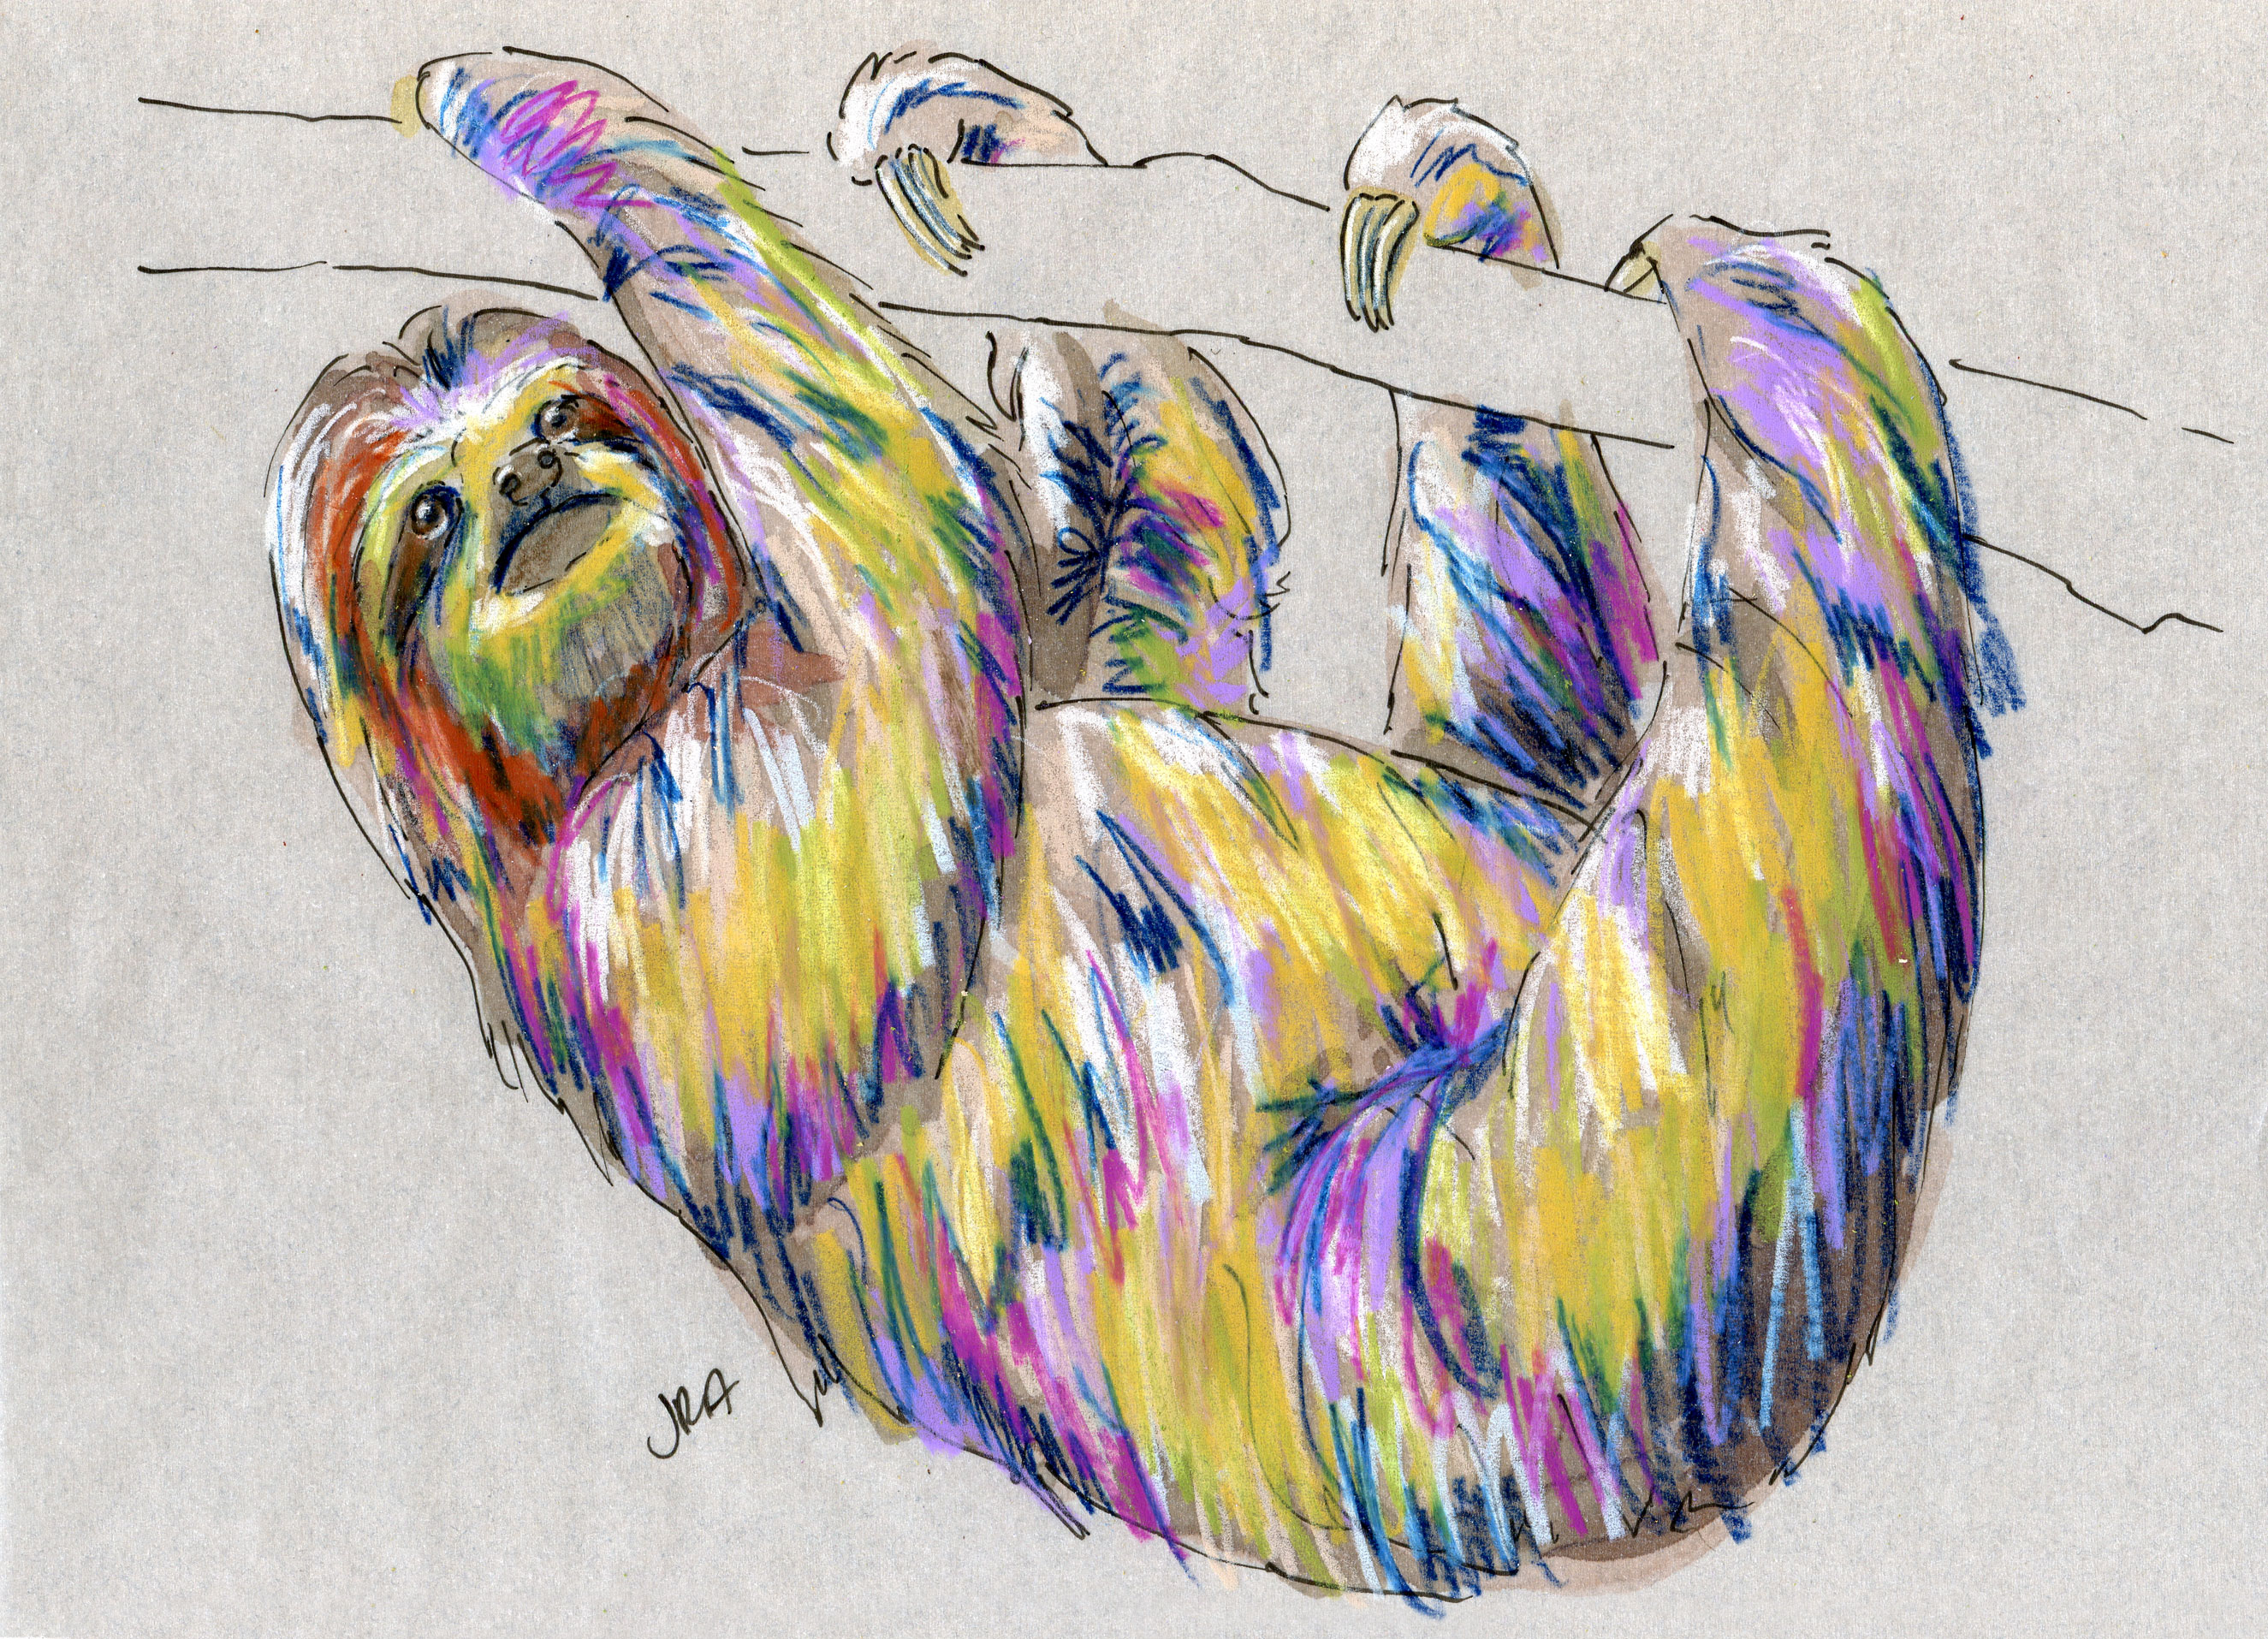 Drawn sloth three toed sloth The  sloth Sloth Three